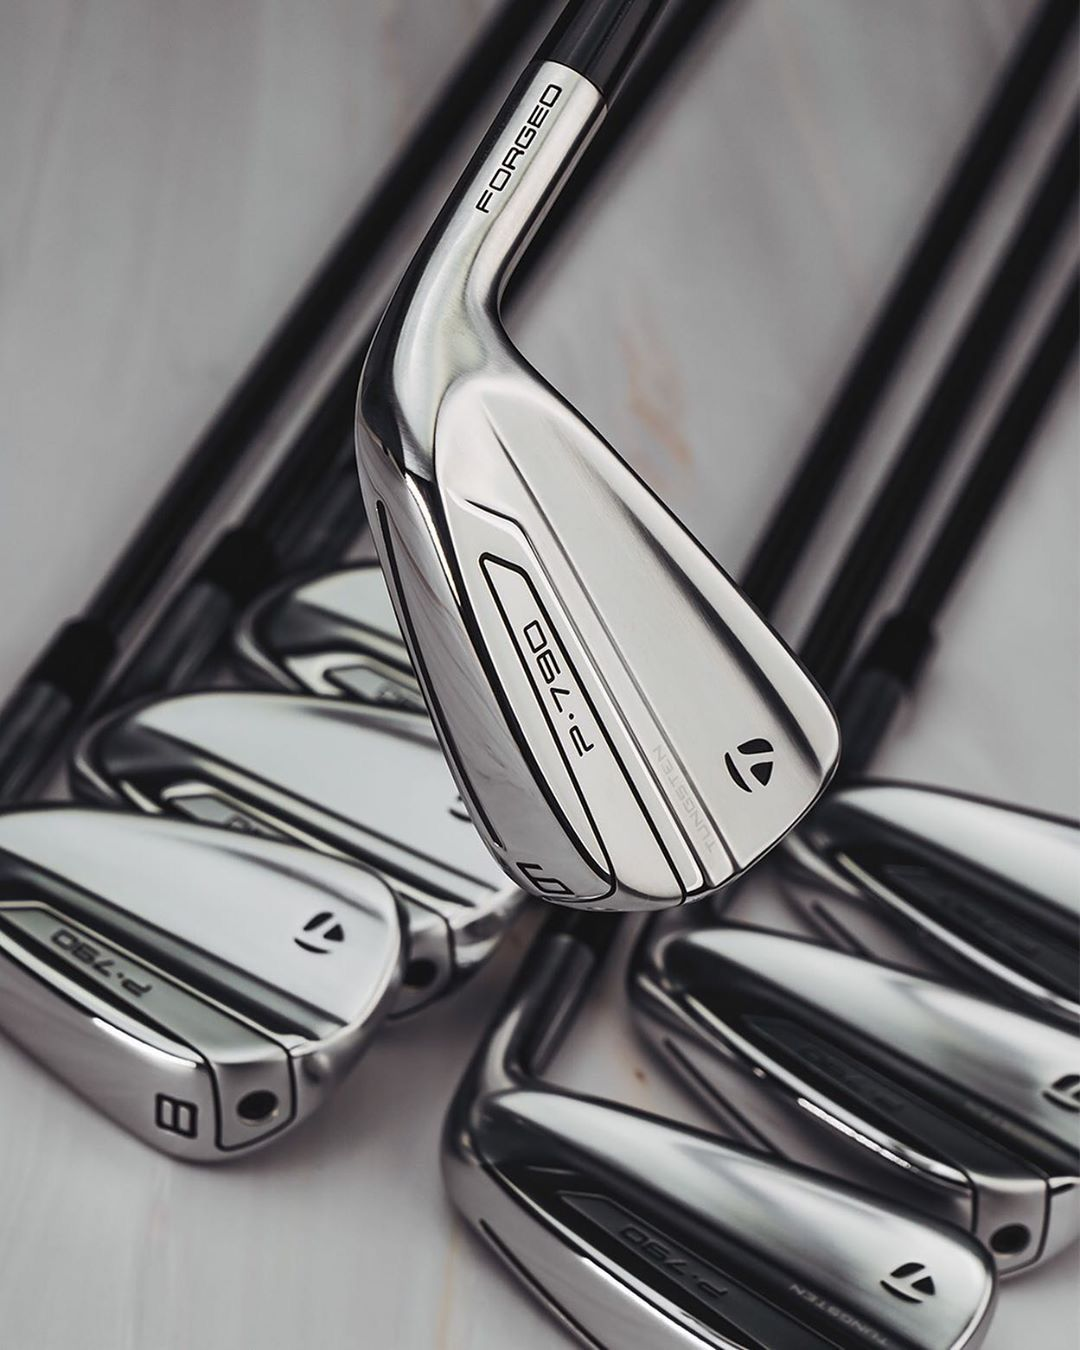 New P790 Irons From Taylormade Golf Clubs Golf Golf Bags